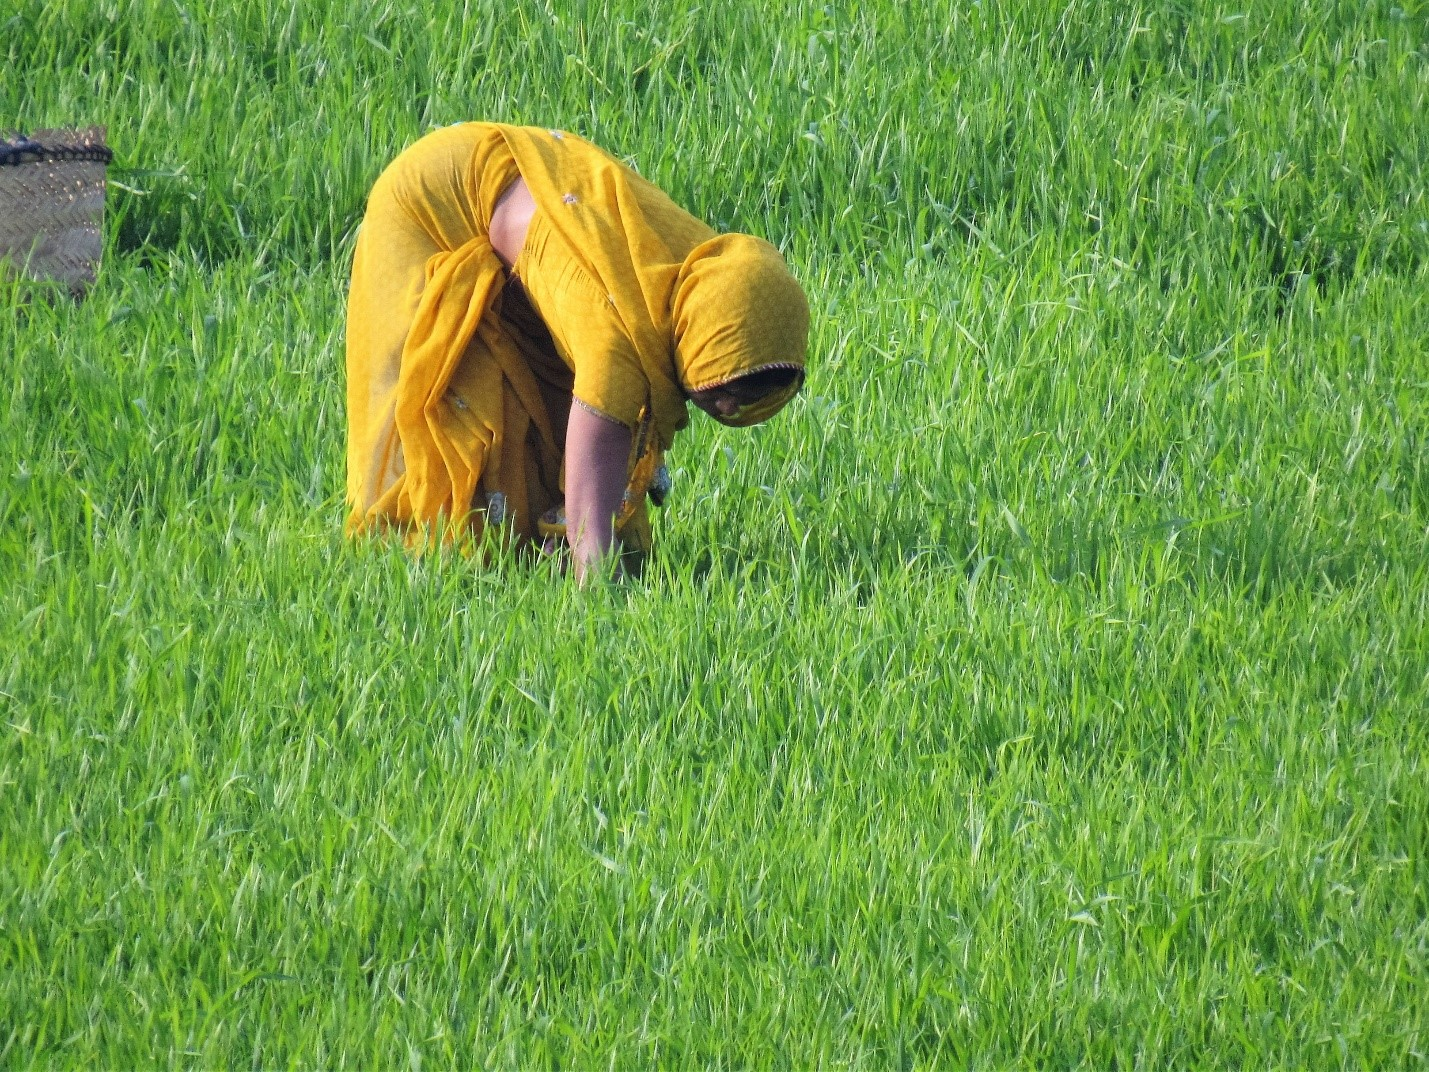 The beauty of the scene belies the backbreaking labor under the unrelenting sun required to harvest rice.